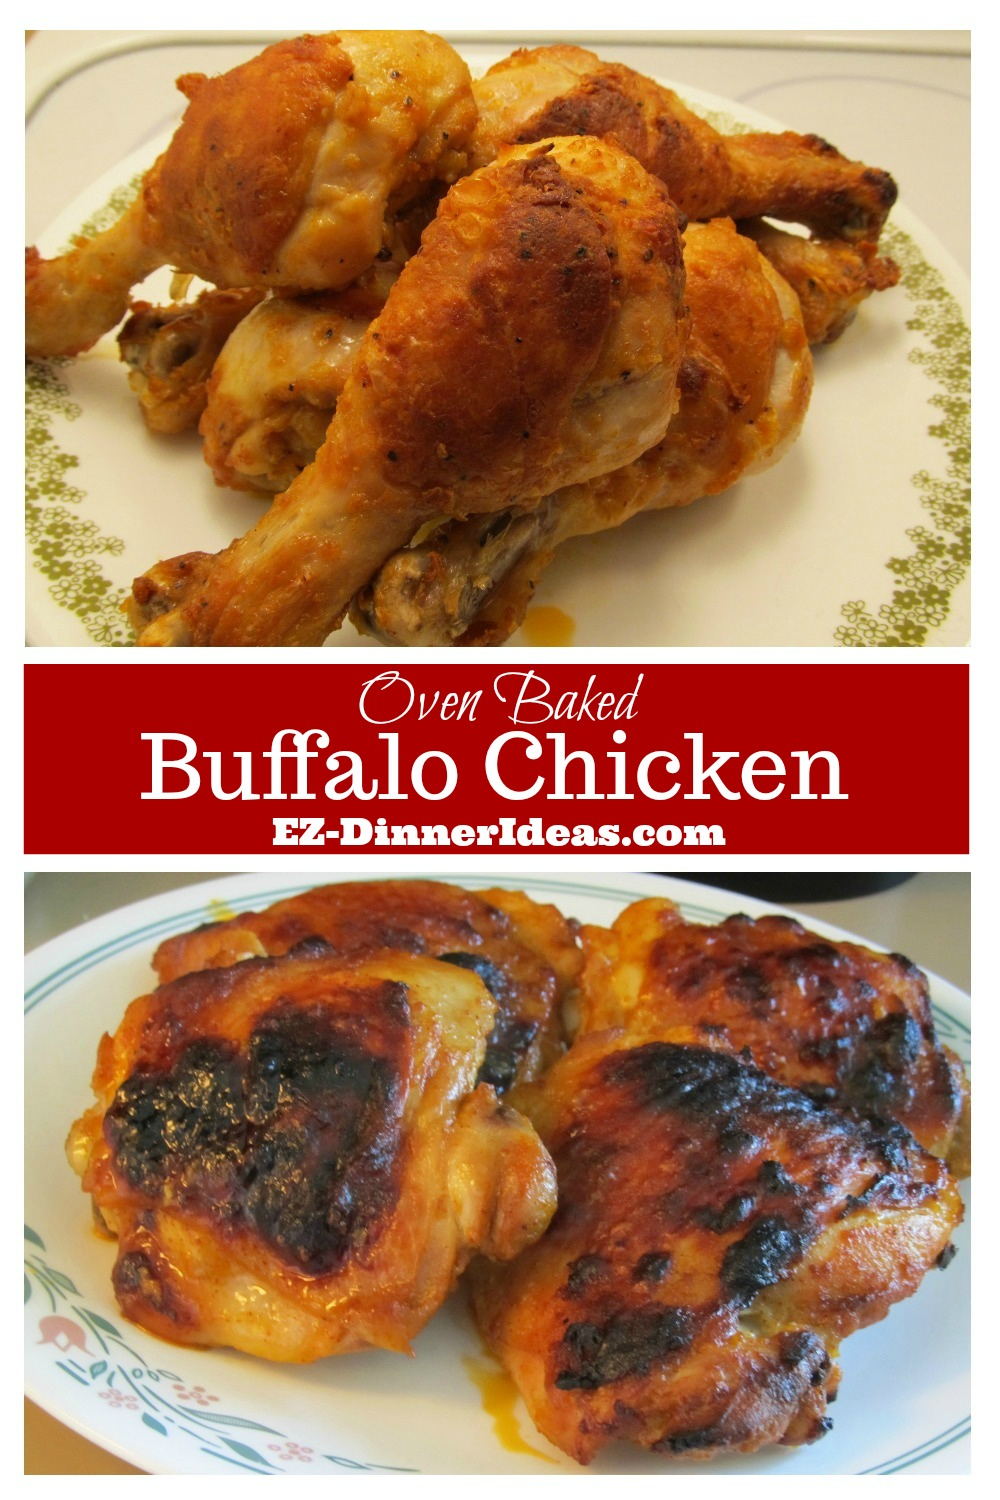 This buffalo chicken recipe is a BIG money saver.  Big chunk of meat in every bite. It is perfect for a game night dinner.